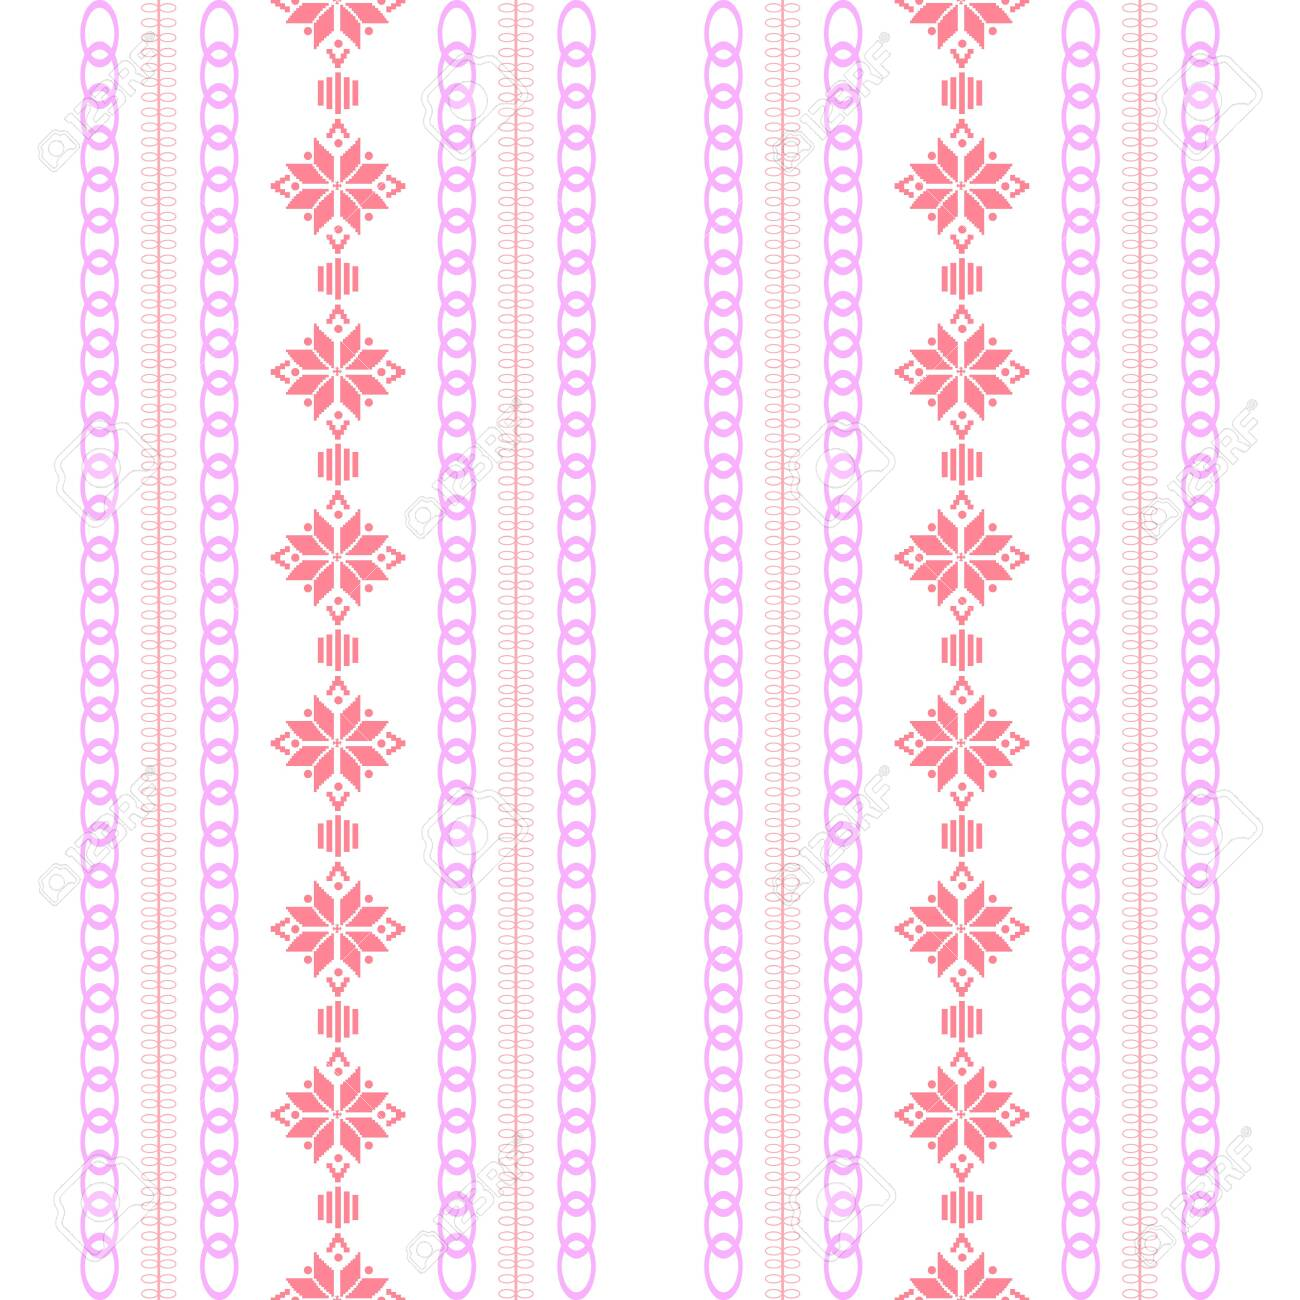 Modern stitches pattern on embroidery design for living room wall decor. Collection - 146709585